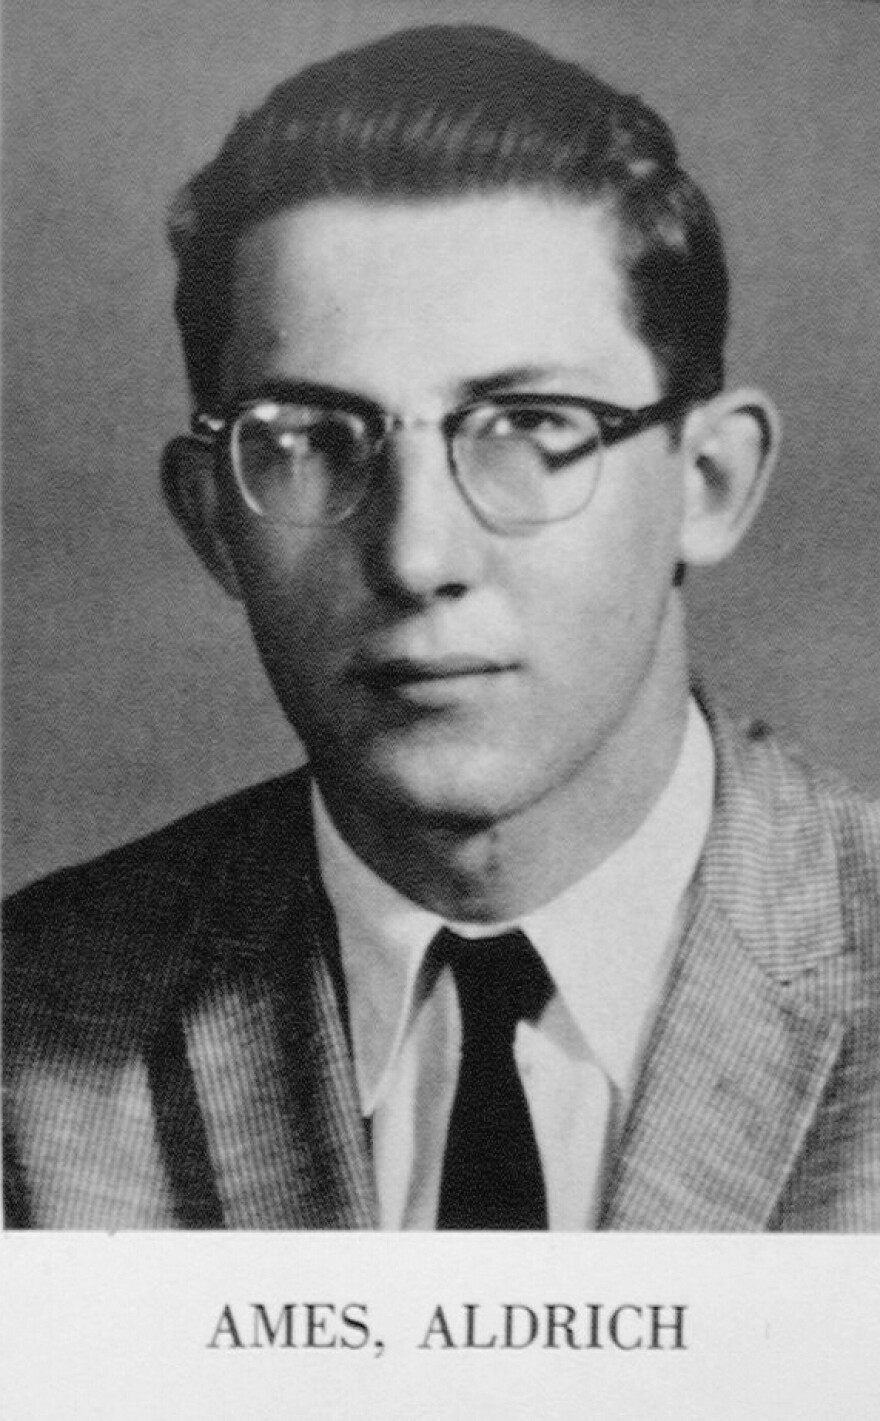 A CIA archival portait of Ames. As a member of the agency's Department of Operations responsible for Soviet counterintelligence he became one of the highest-ranking and most damaging spies in U.S. history.